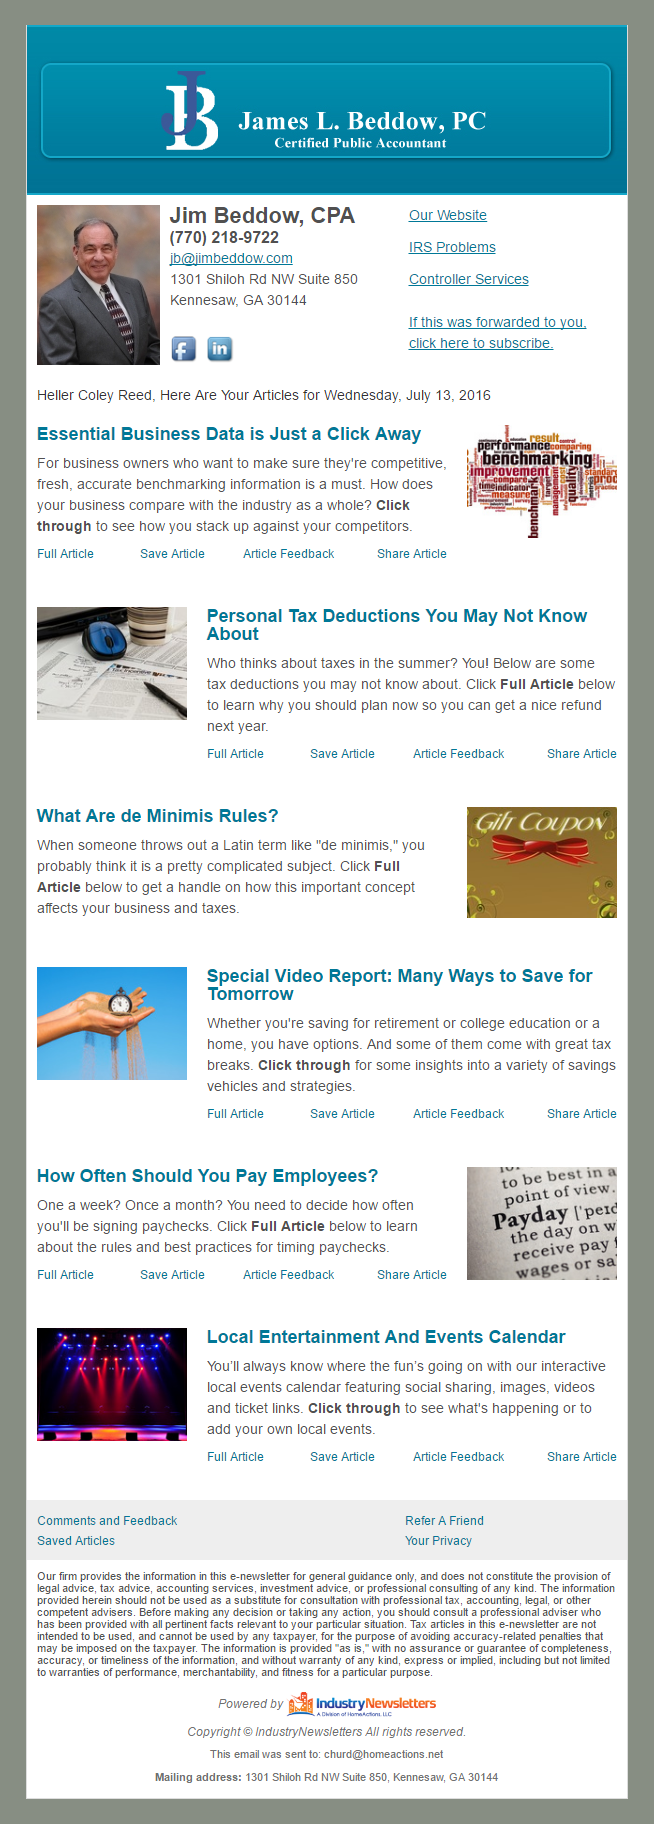 James L. Baddow, P.C. - IndustryNewsletters Sample Email Newsletter